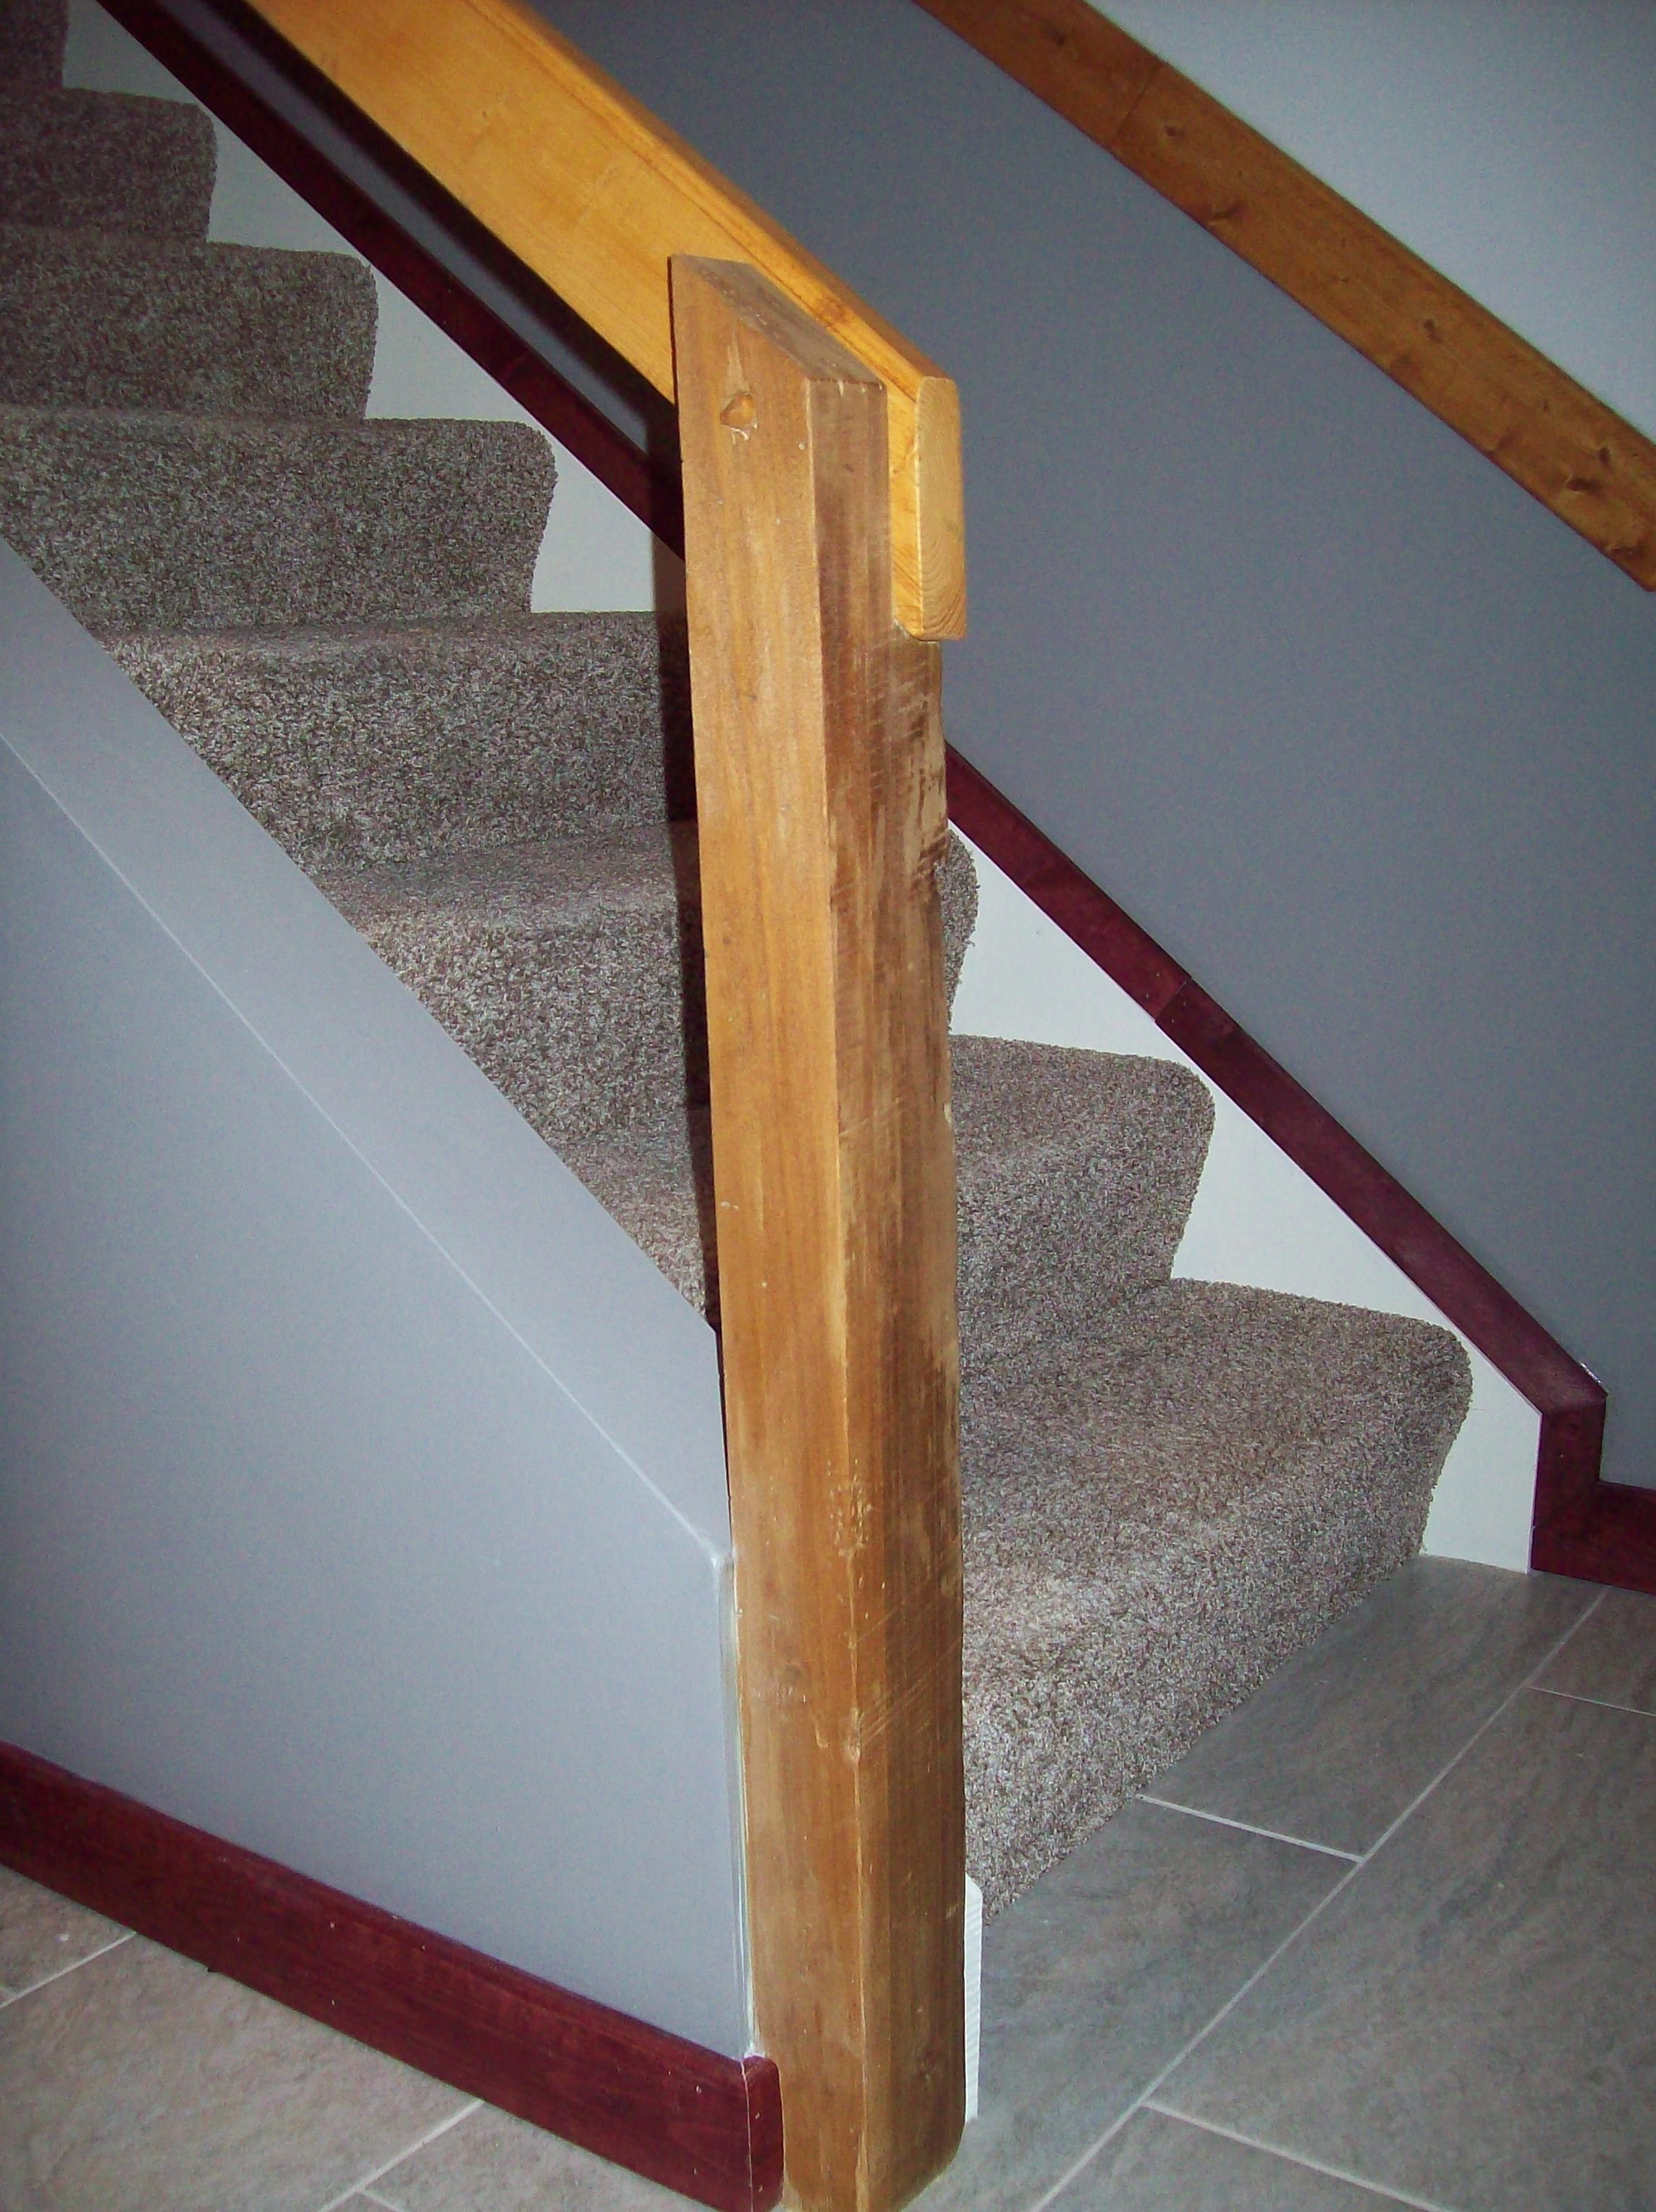 Removable Stair Rail That Was Finished Nailed At The Top